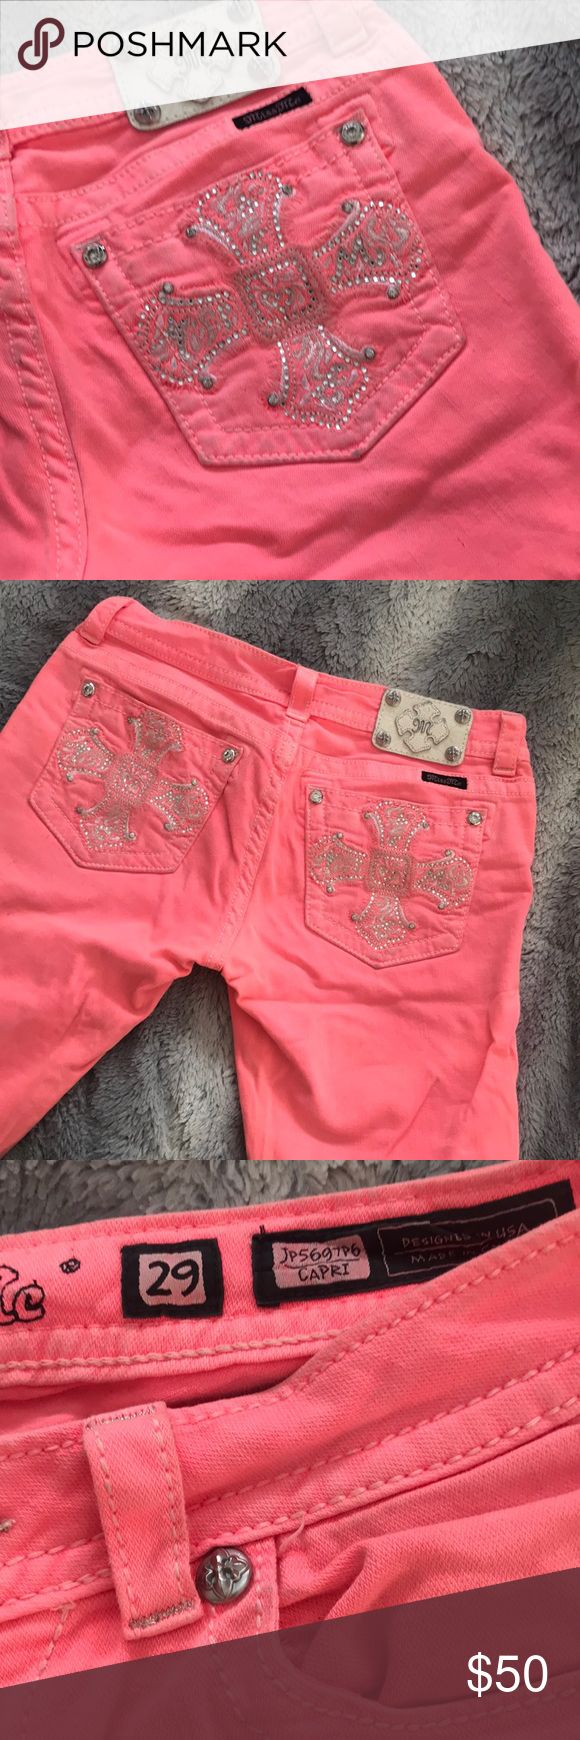 💋💋STUNNING Miss Me capris 💋💋 The most beautiful color, a coral (orangey pinky) capris is so cute!! With Miss Me famous cross on the pocket and bling on the front they are amazing. Only worn once. Miss Me Jeans Ankle & Cropped